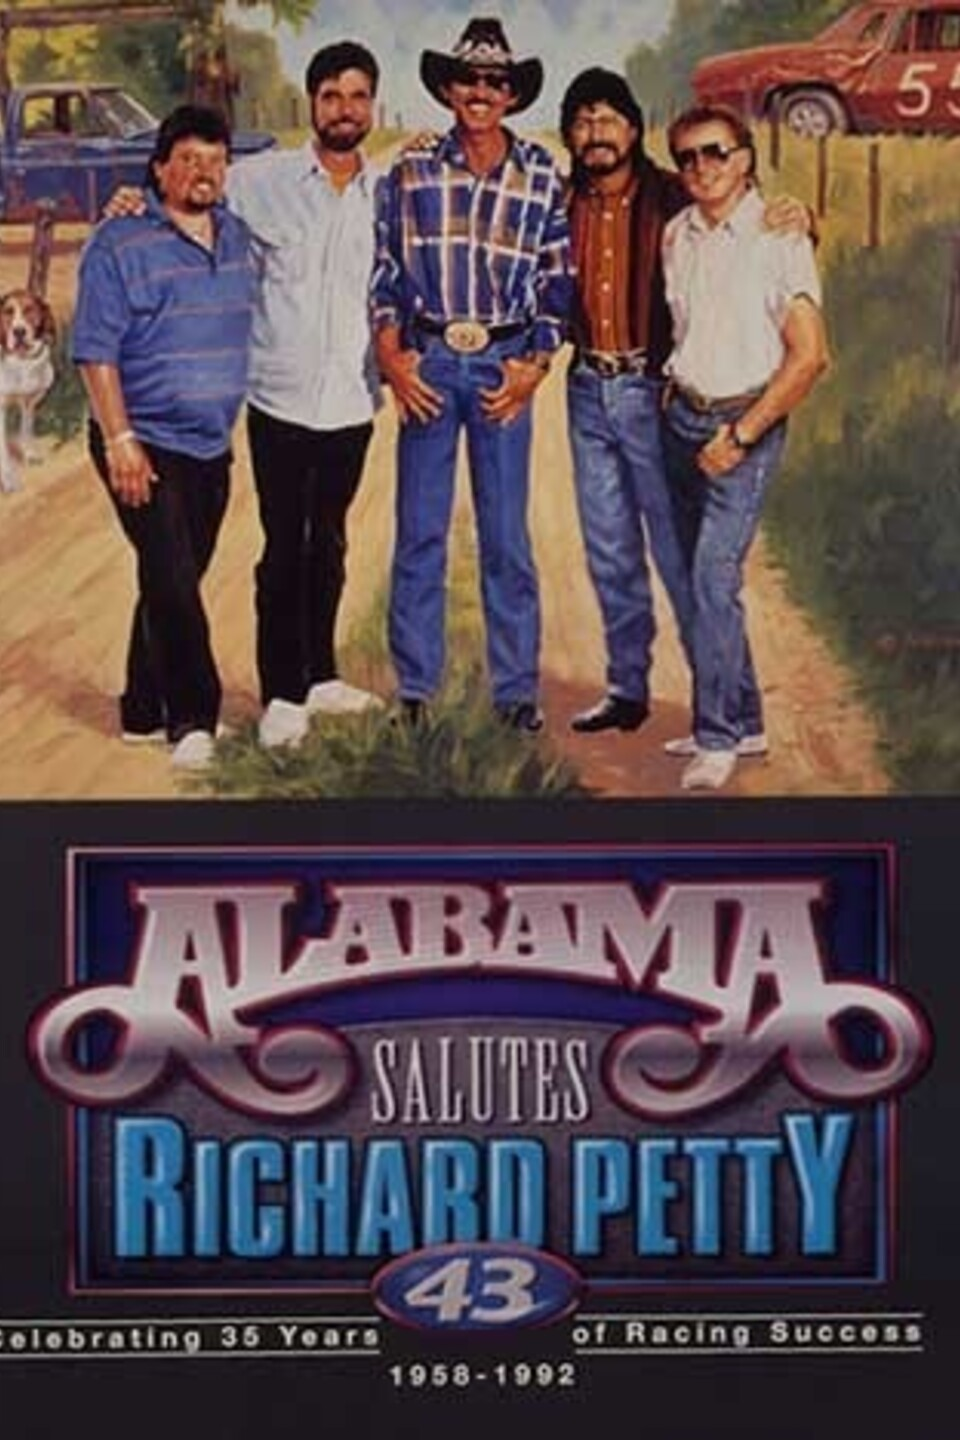 Richard petty alabama poster20170808 15799 1t7vzn8